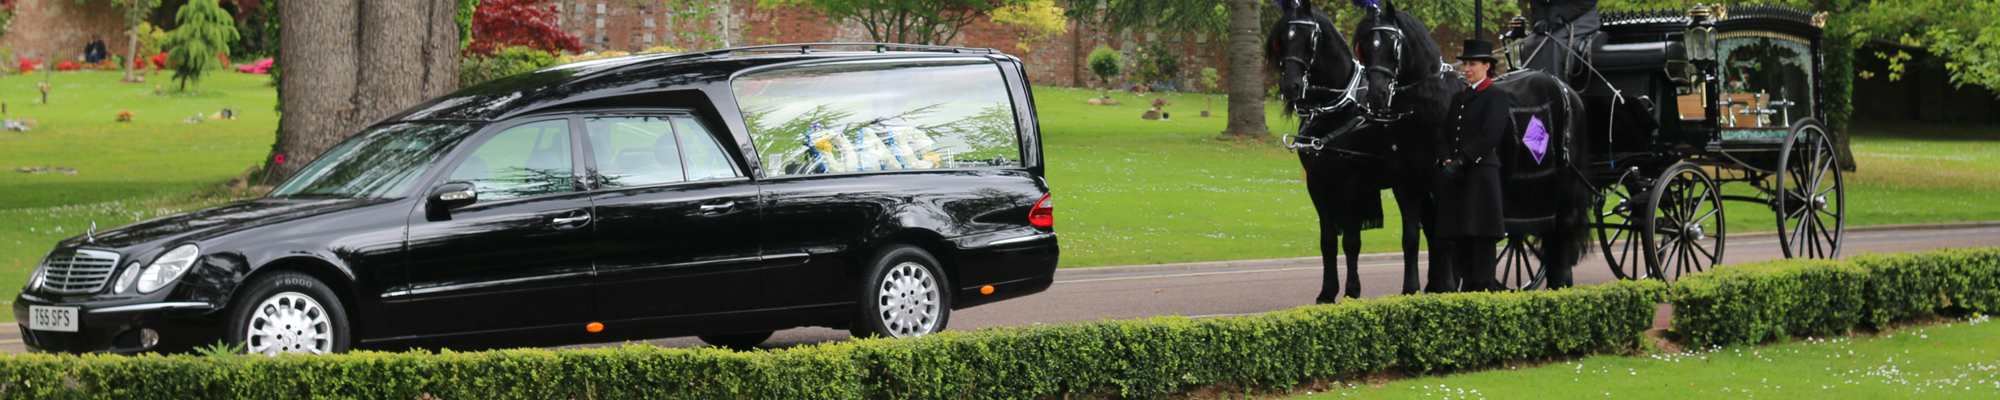 Funeral Services Exeter